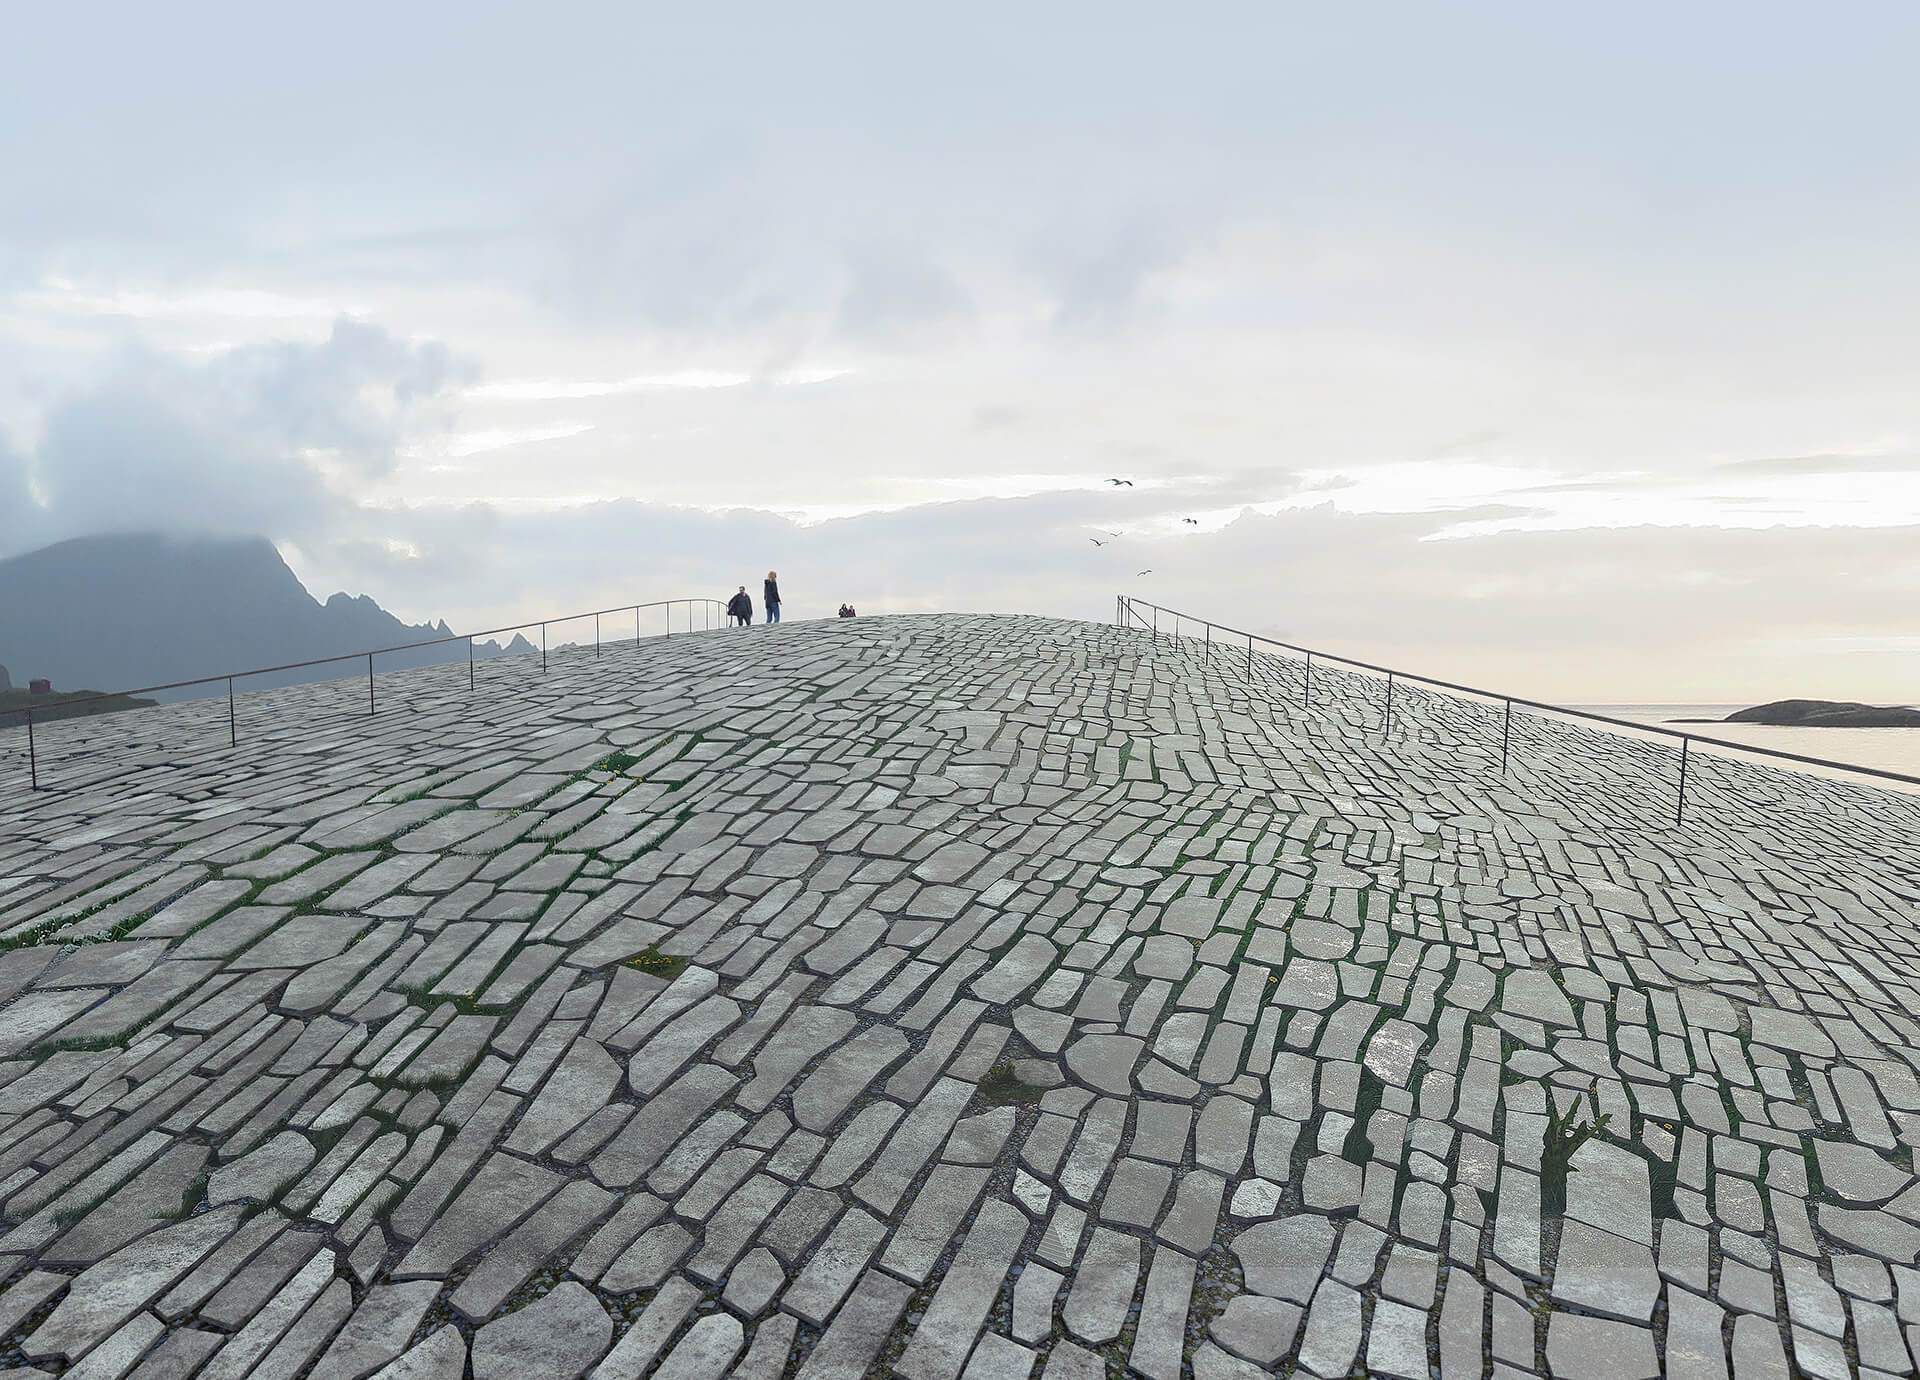 Visitors are invited to walk atop The Whale's stone covered roof, and take-in the stunning landscape | The Whale by Denmark based Dorte Mandrup | STIRworld